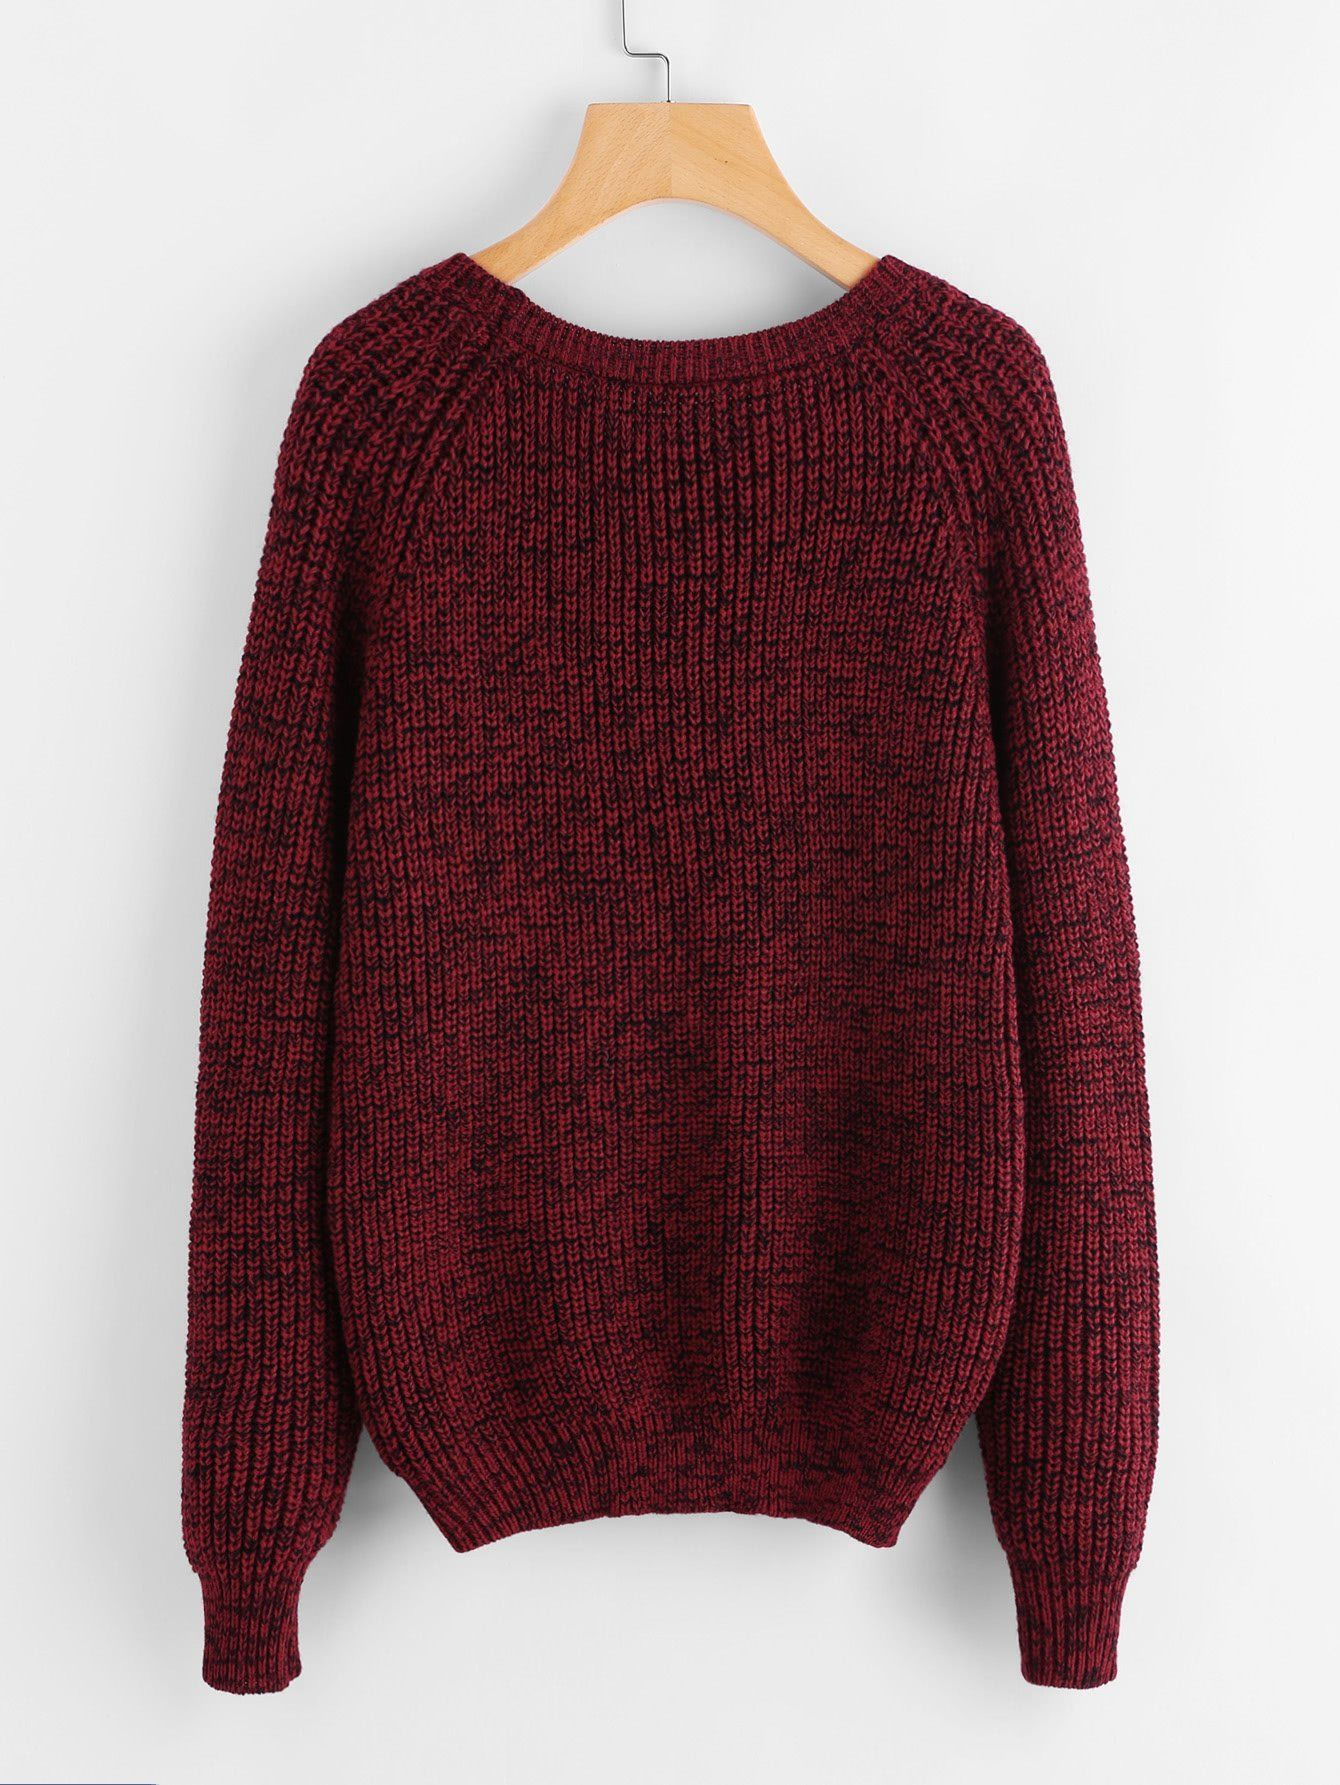 42858107c588 Material  10% Acrylic Color  Burgundy Pattern Type  Plain Neckline  Round  Neck Style  Casual